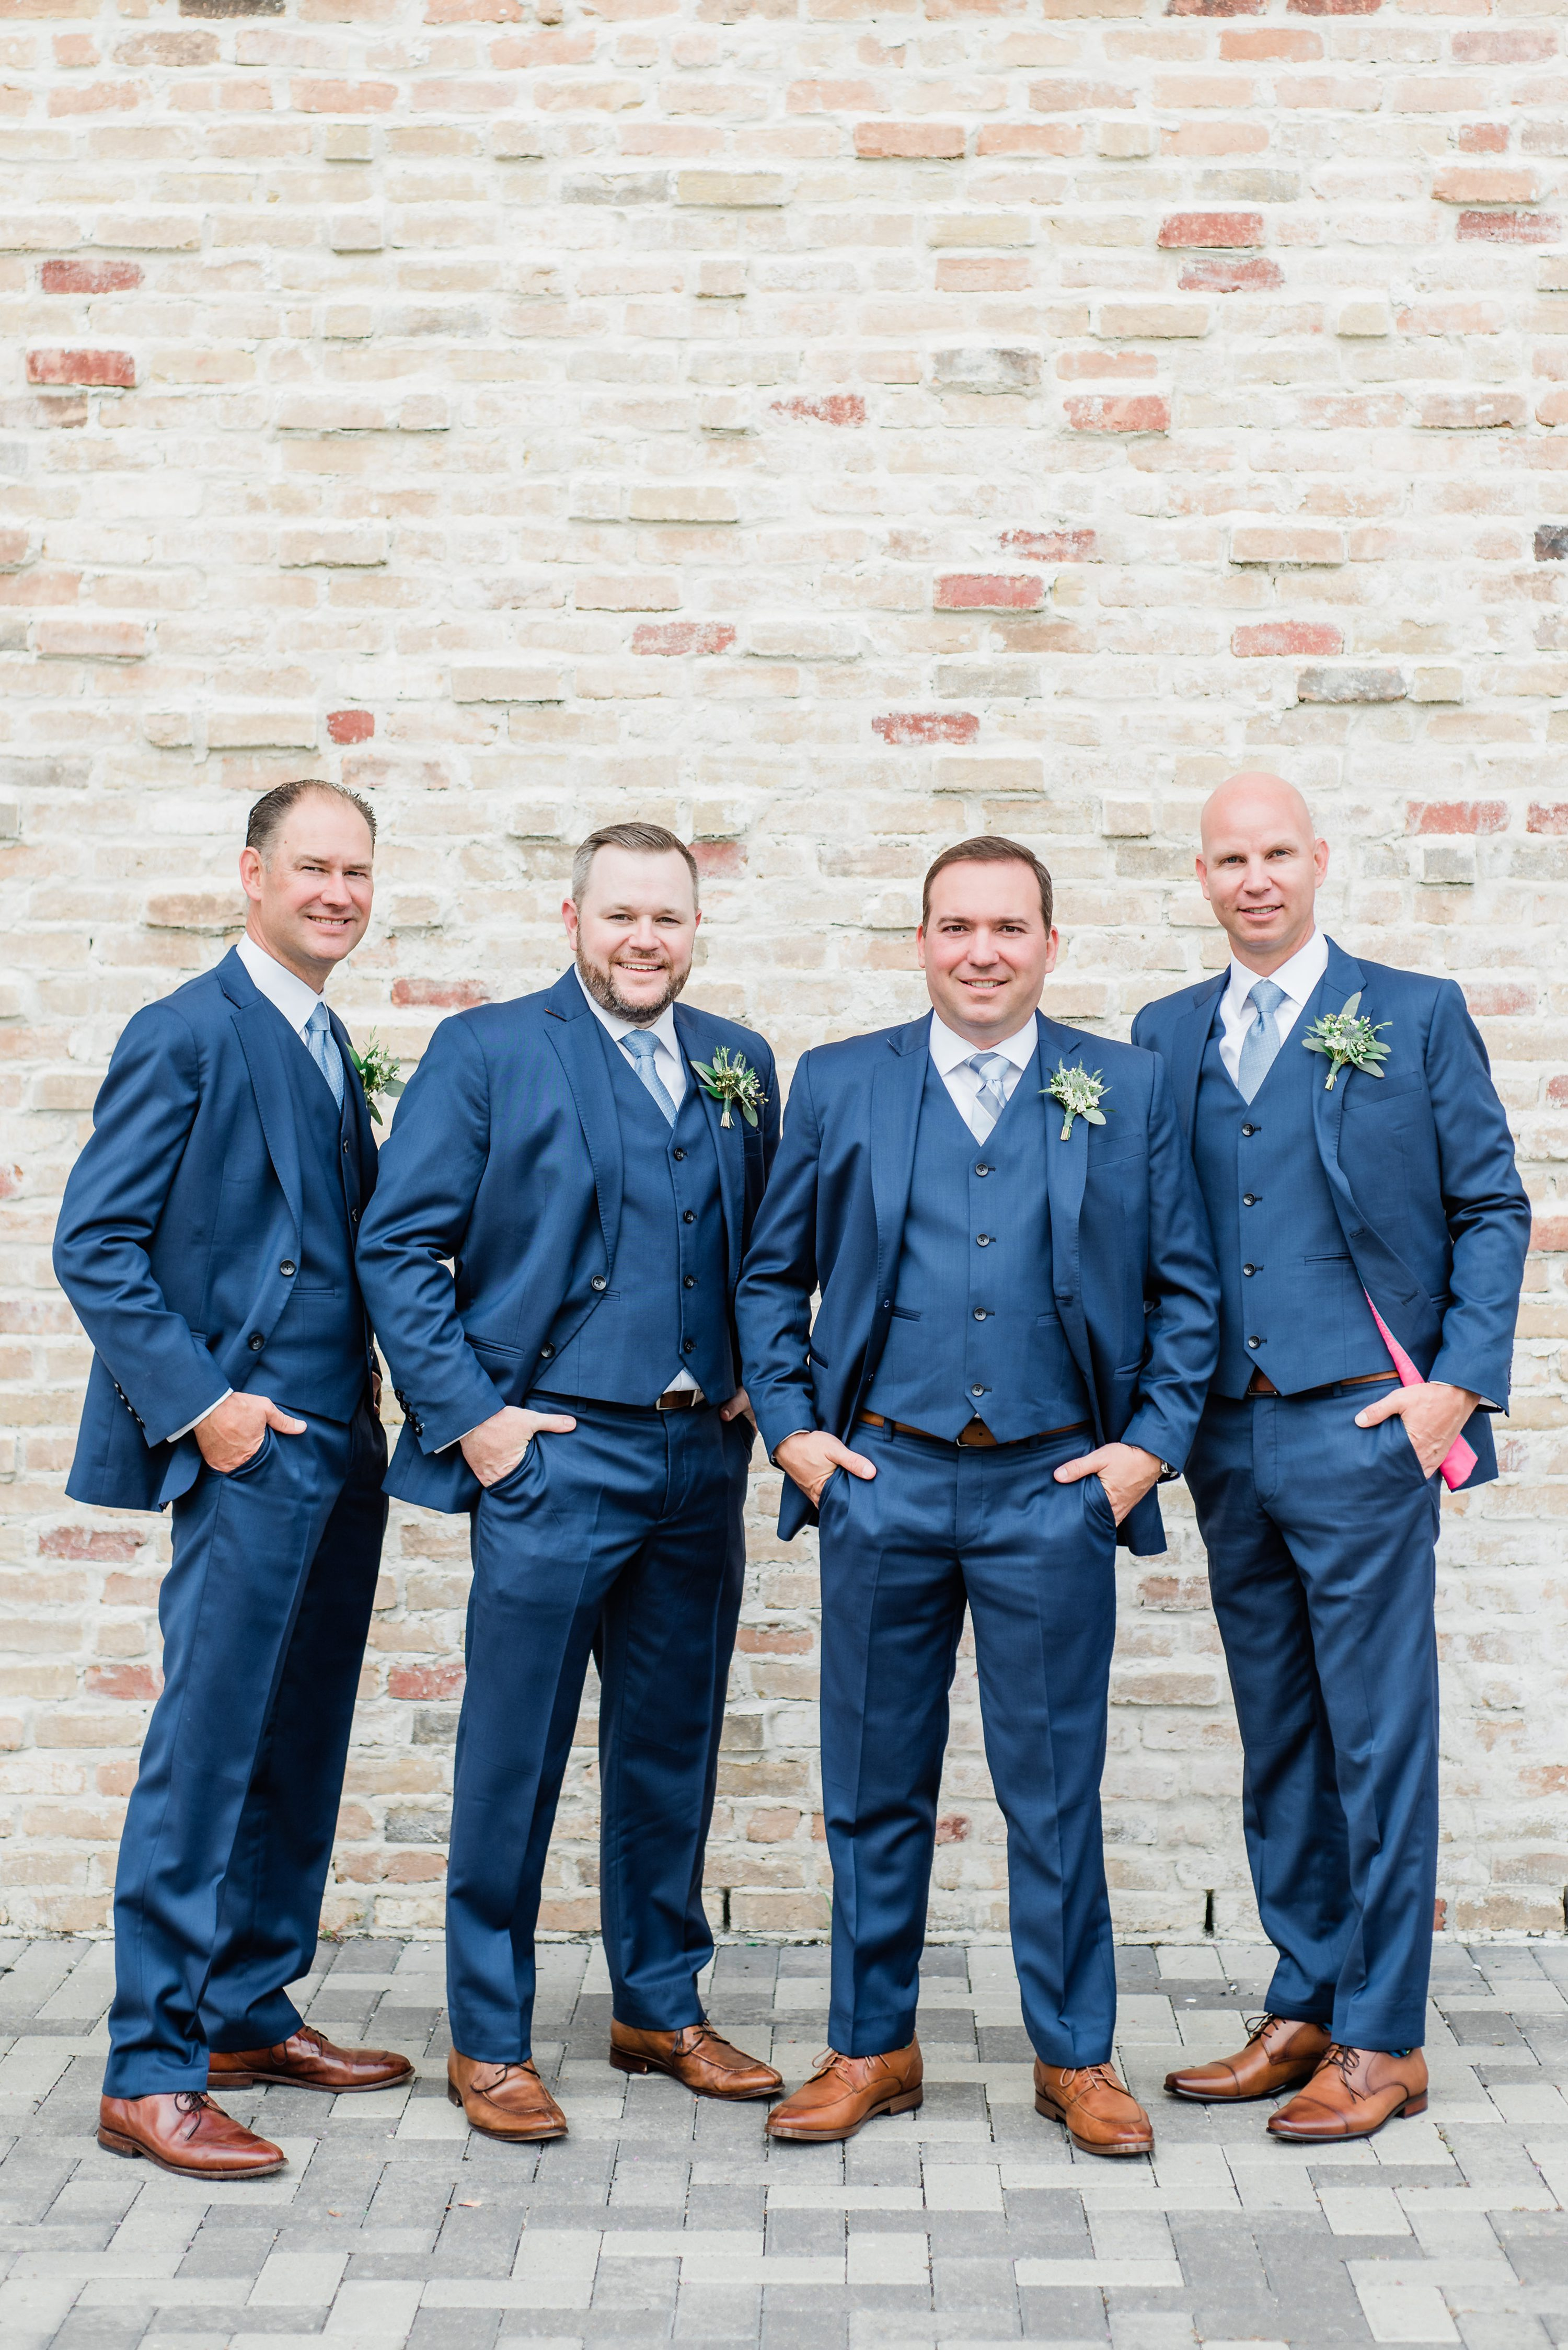 and we loved the way the decorated the barn with tons of greenery and a neutral color palette. They ended the wedding with a fun sparkler exit surrounded by their family and friends, while the groomsmen wore custom tailored blue suits. Their romantic ceremony was so full of emotion